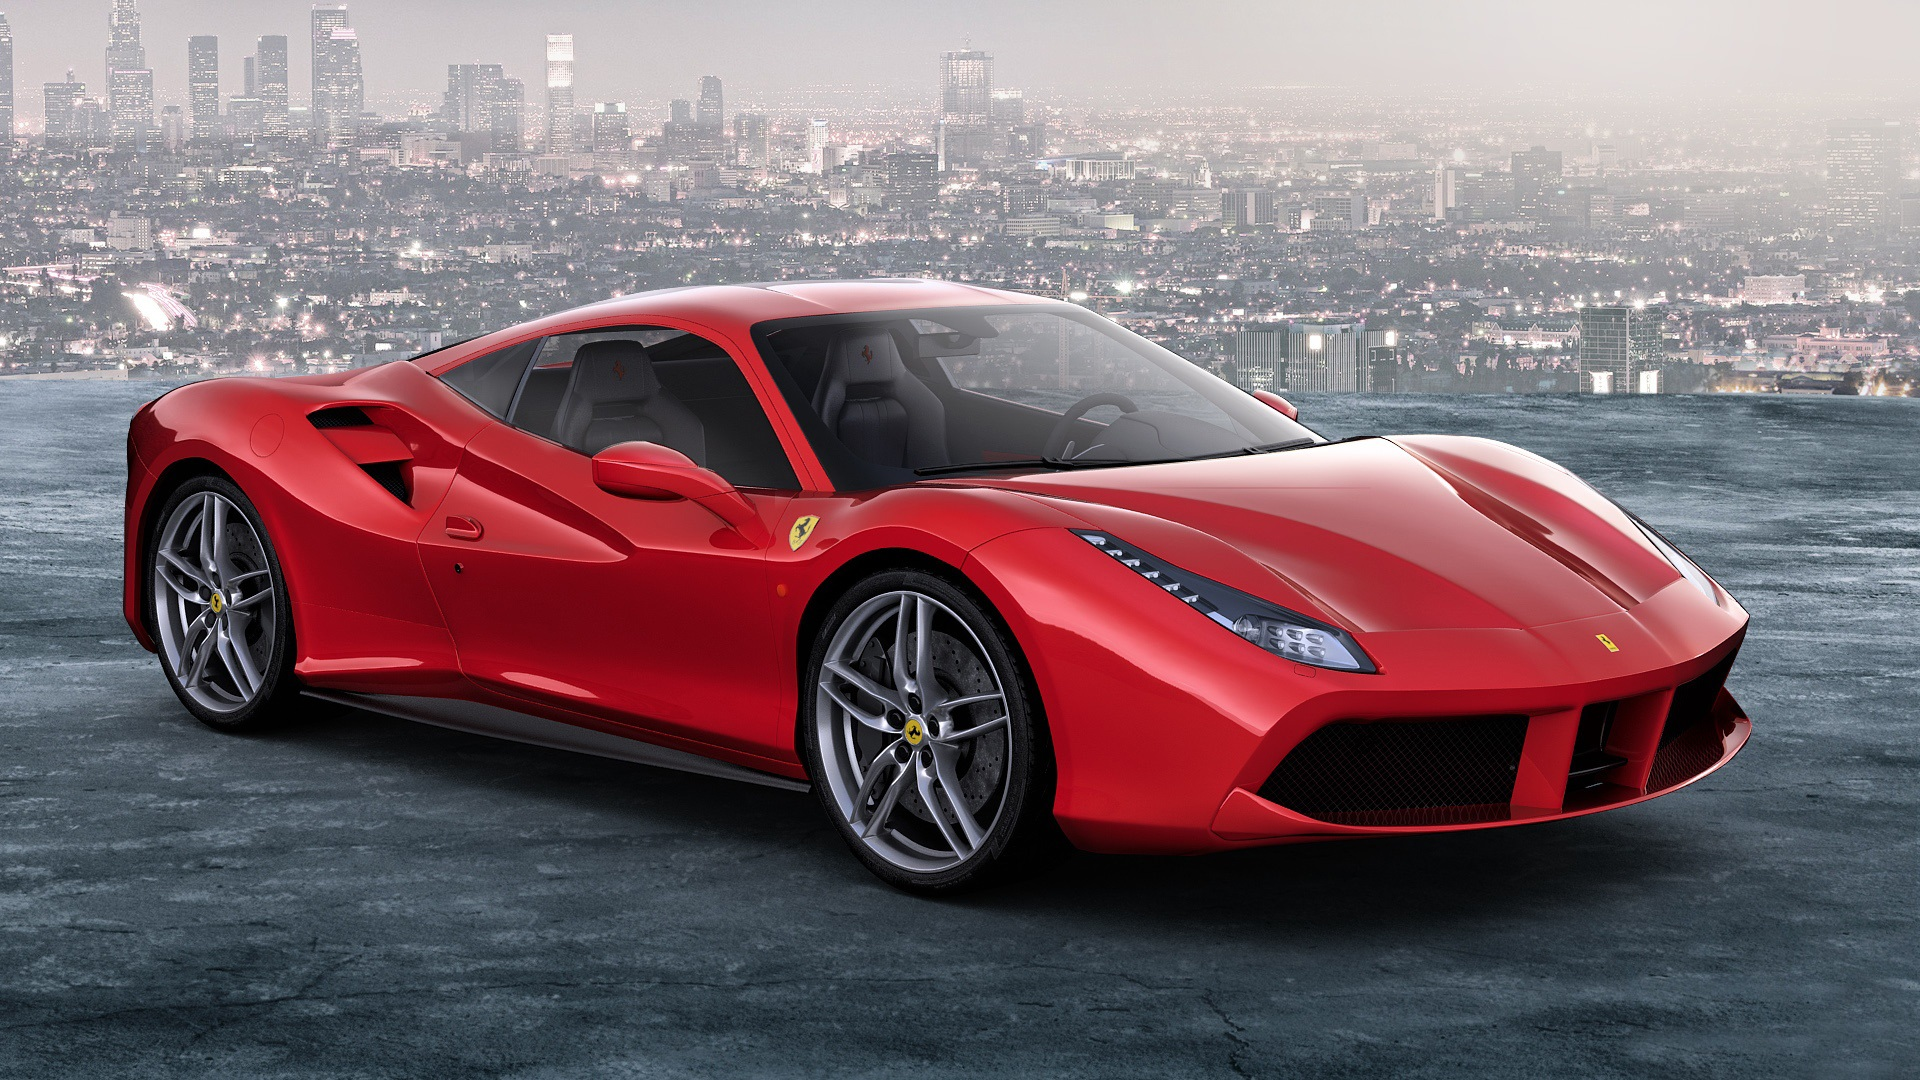 Wallpaper Ferrari 488 Gtb Red Supercar 1920x1080 Full Hd 2k Picture Image